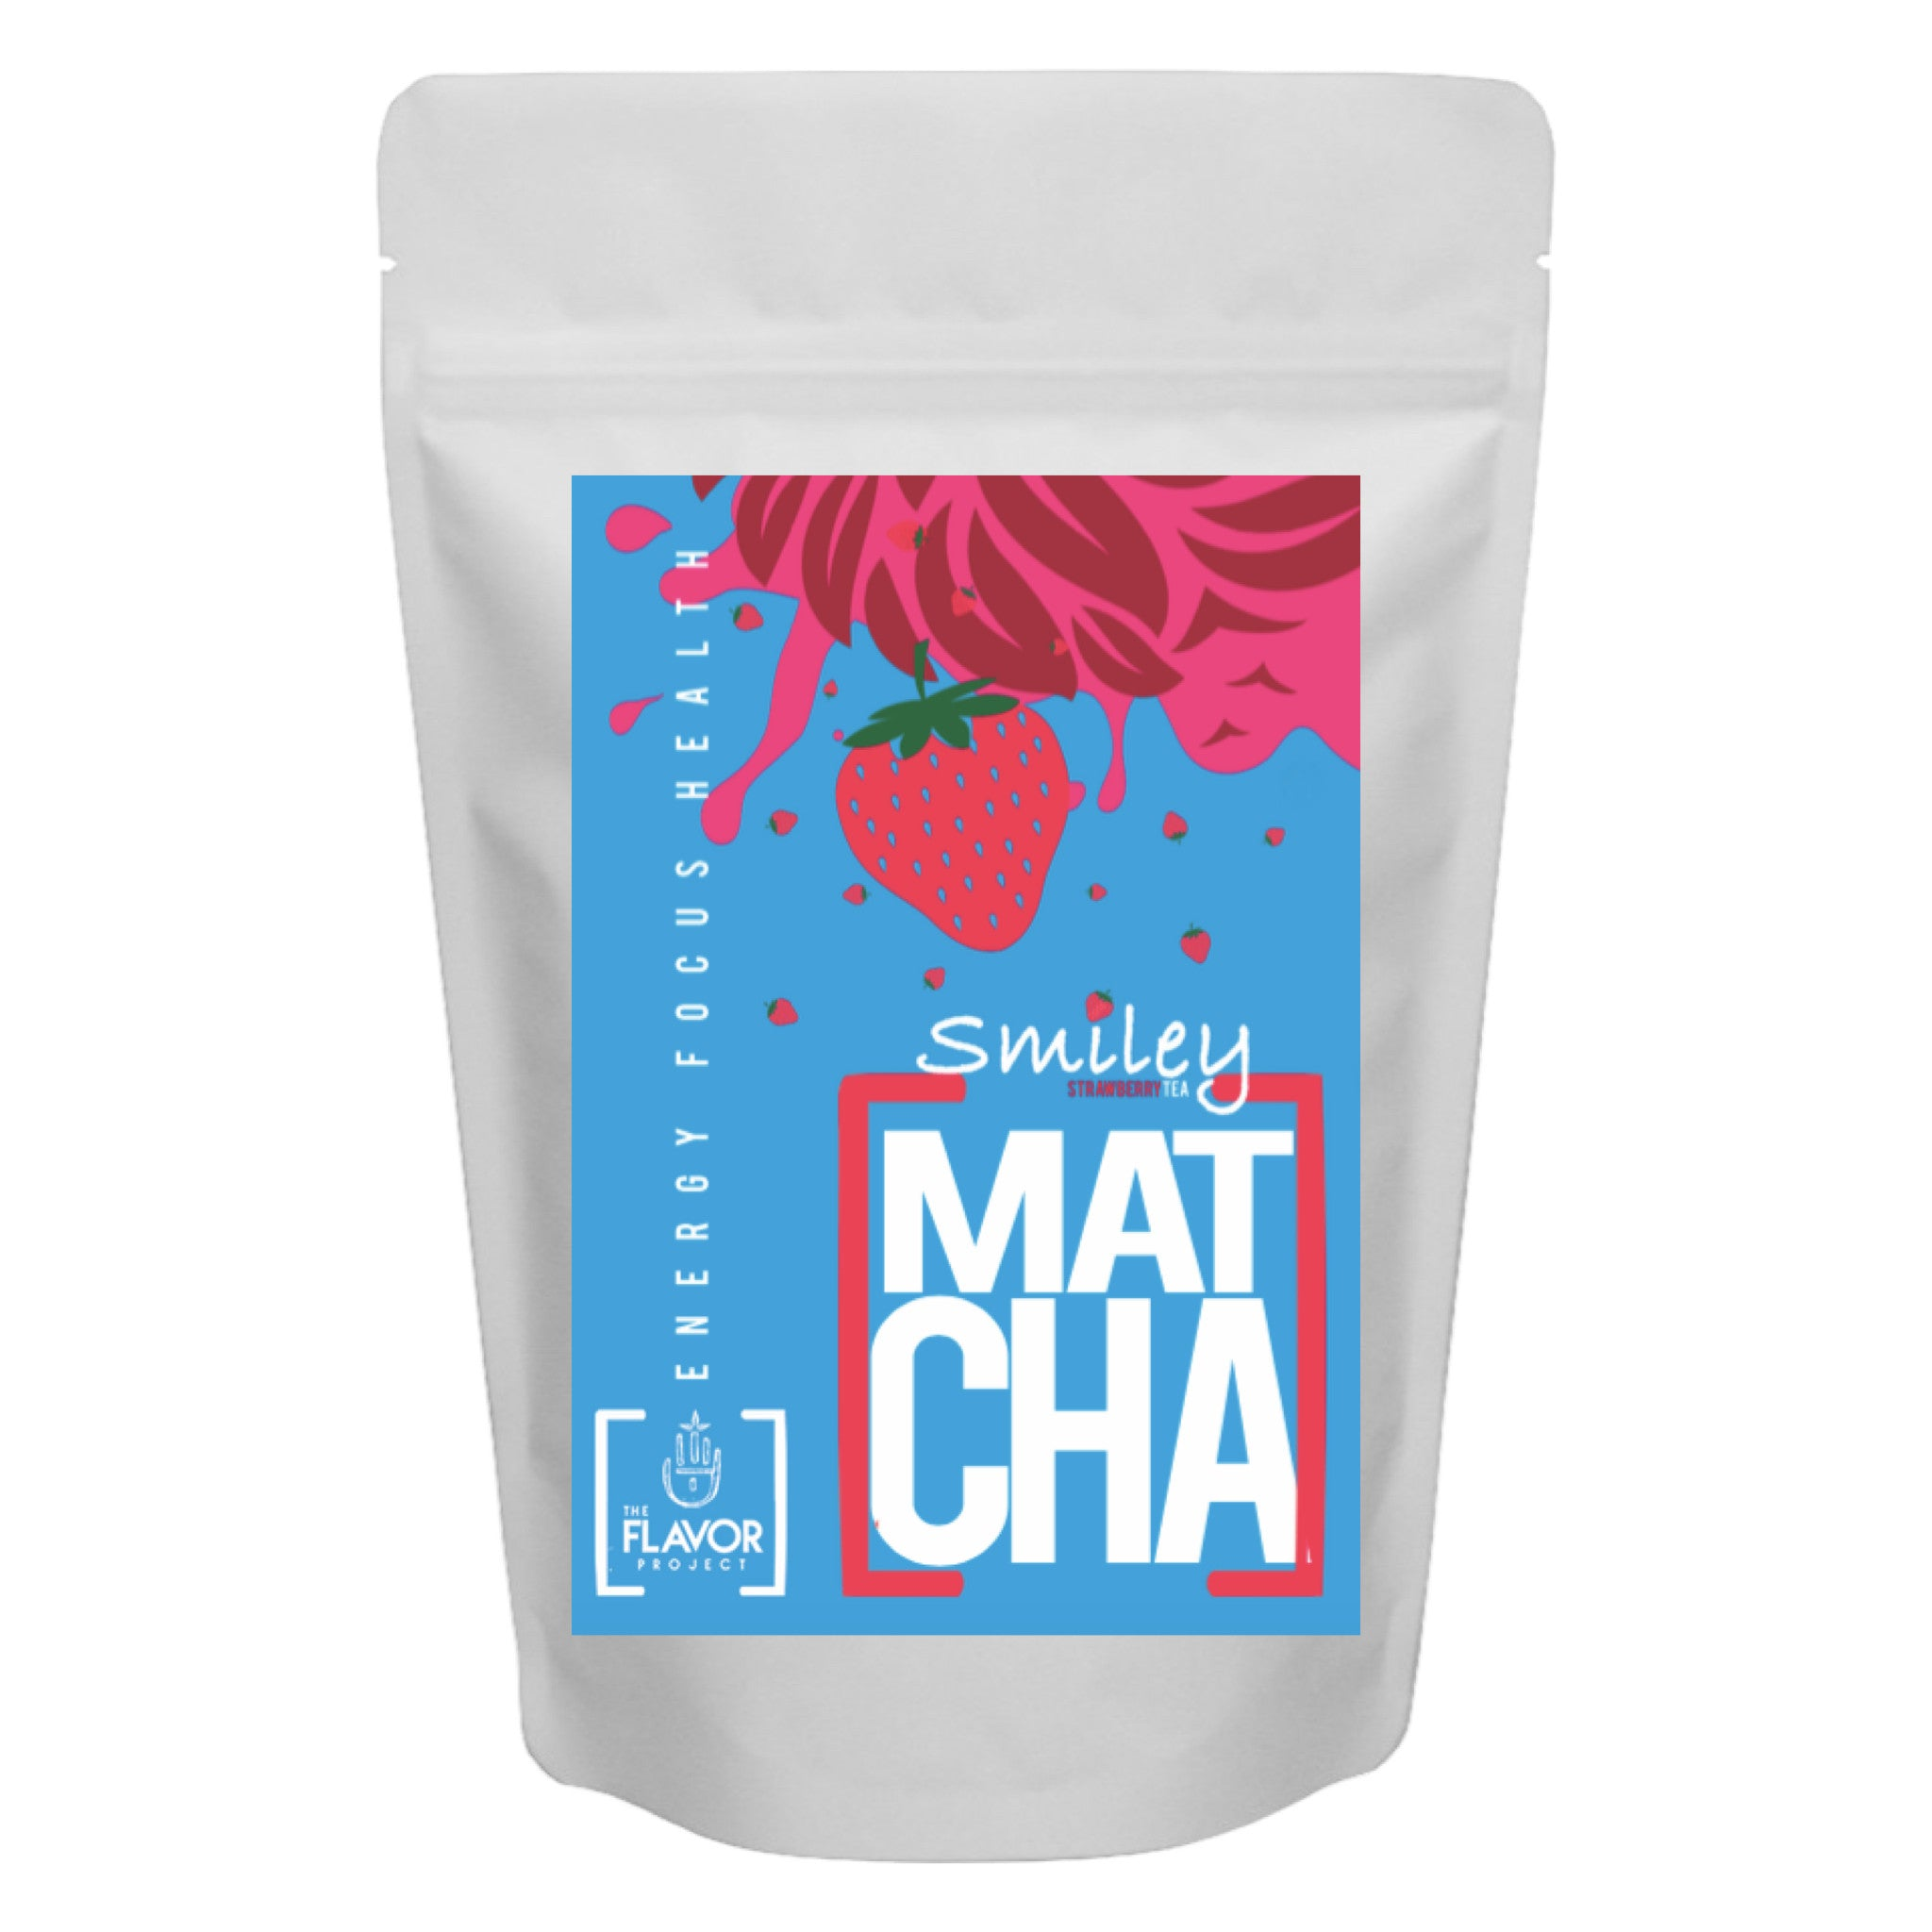 Strawberry Matcha Green Tea | The Flavor Project